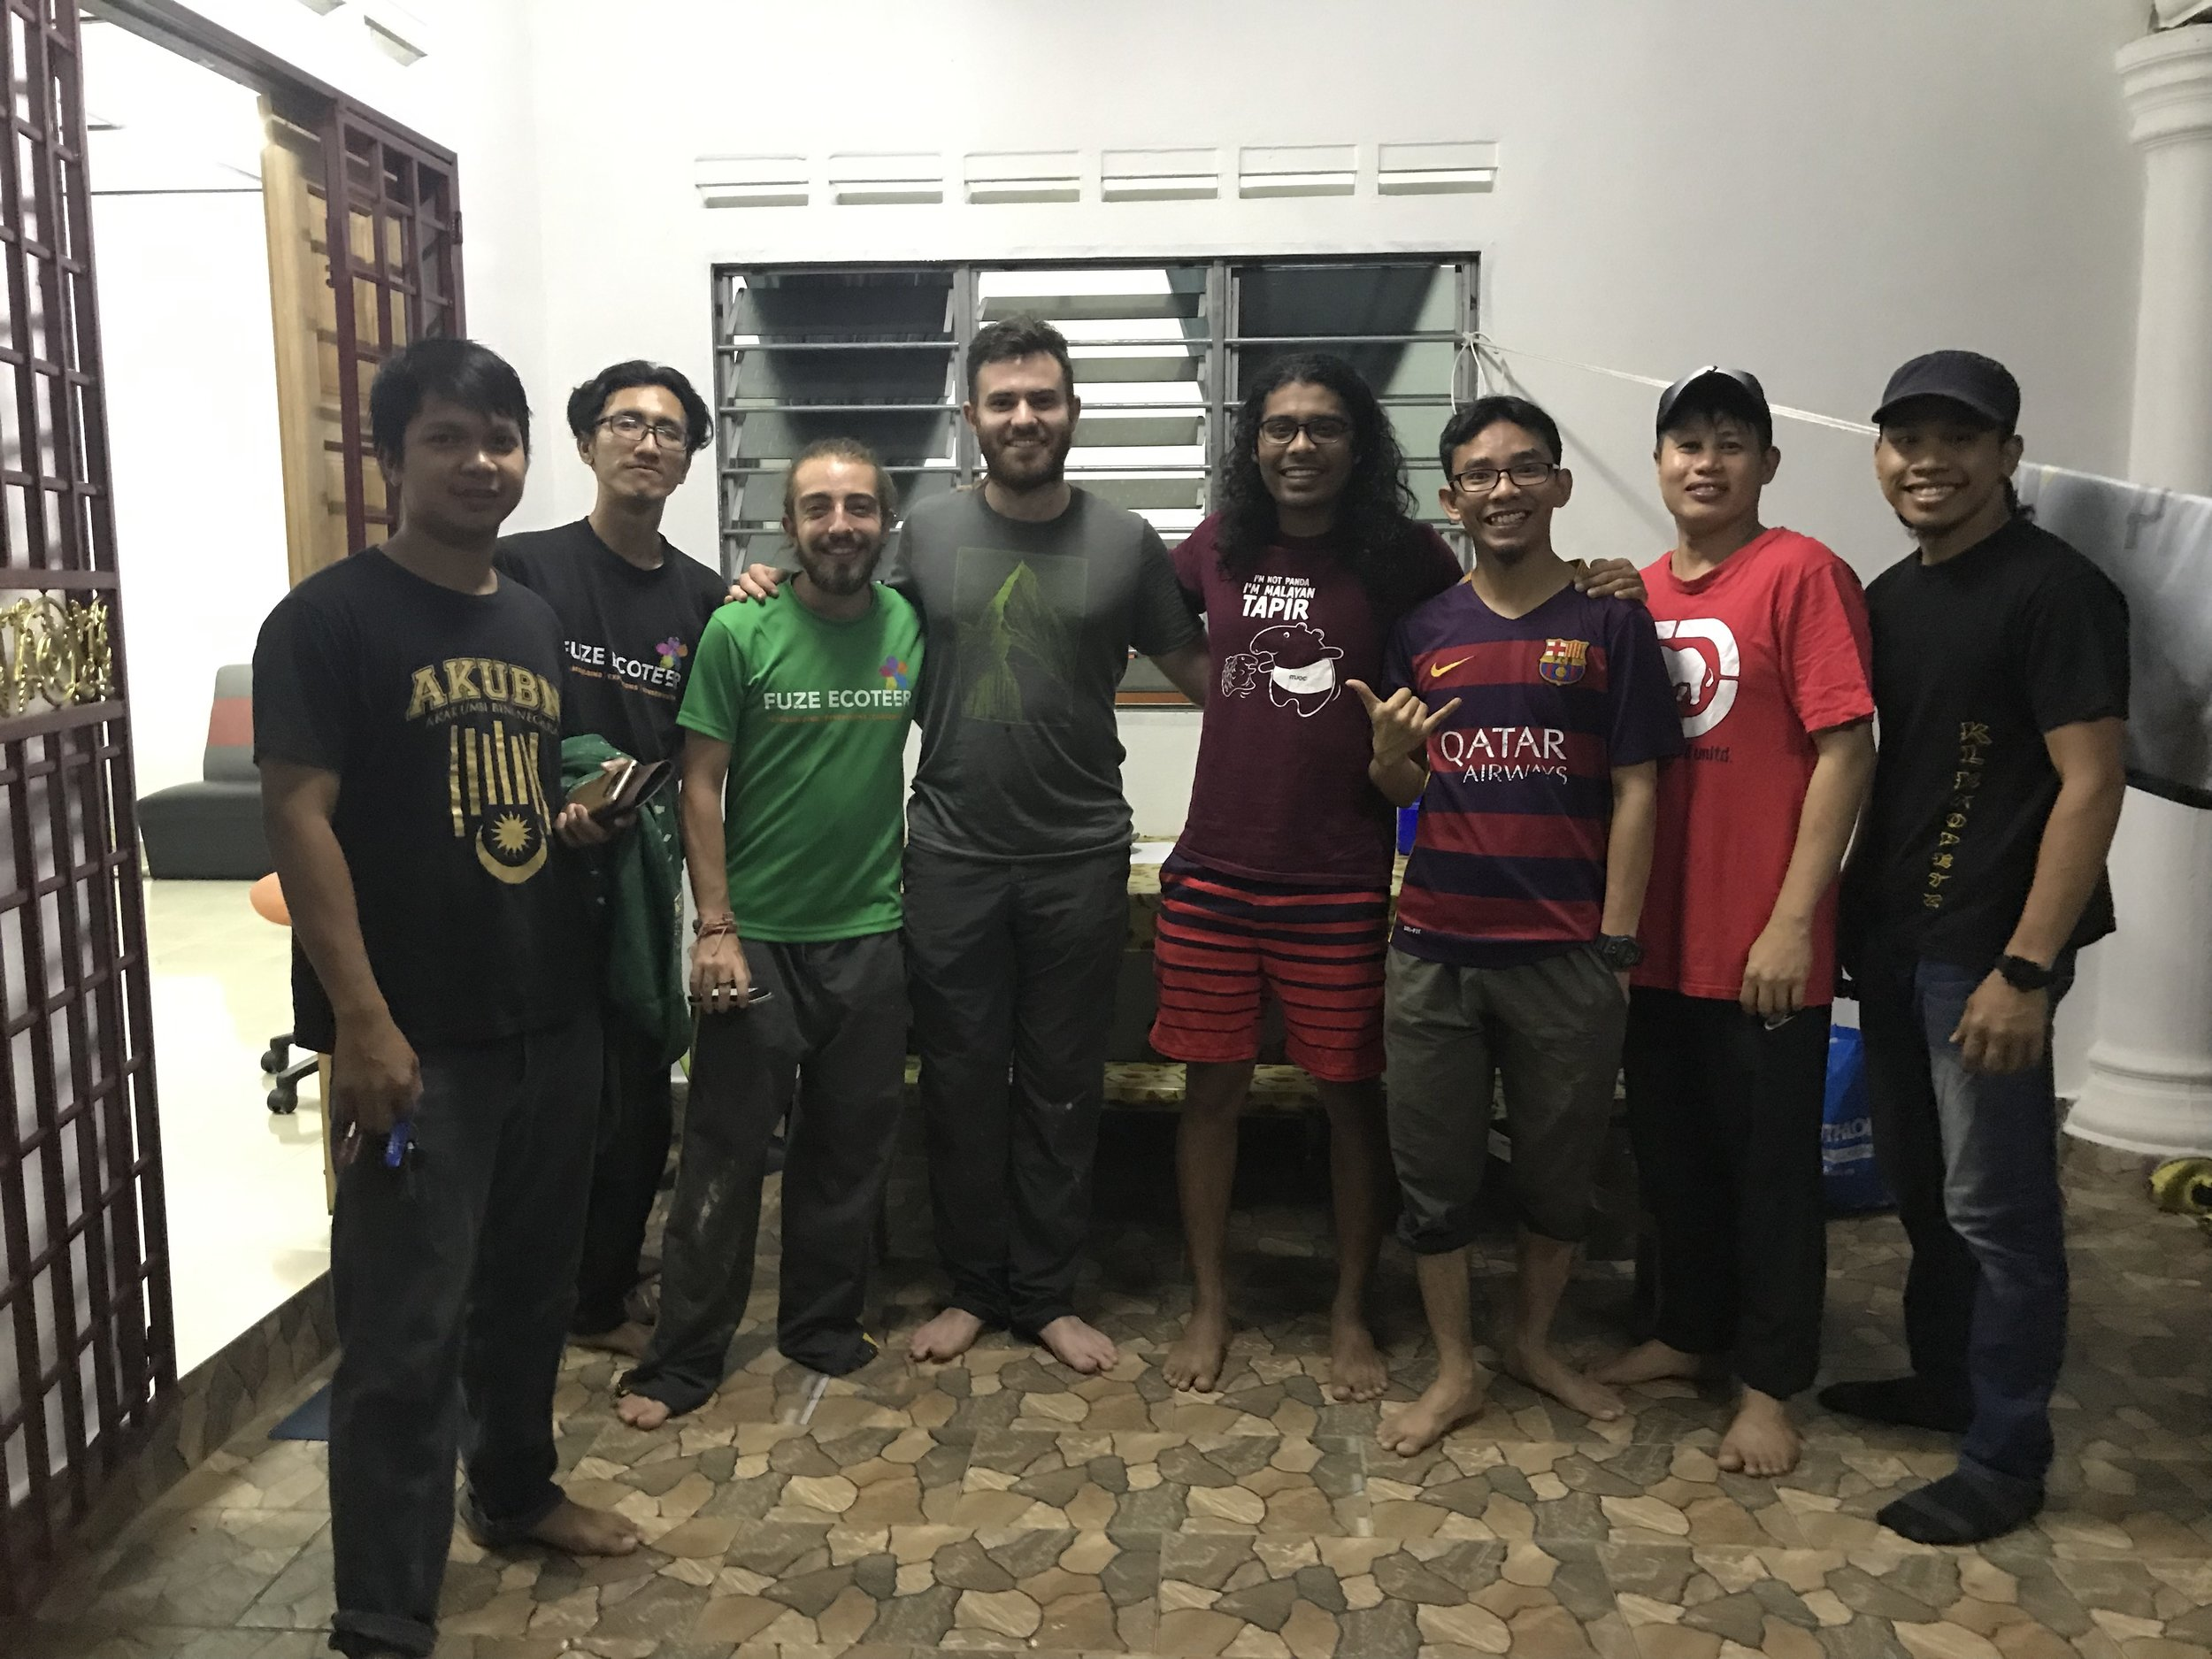 The Herp Gang (and some extras!) (L to R) Syafiq, Bawok, Jordan, Angus, Izereen, Ariff, Vince, and Boy